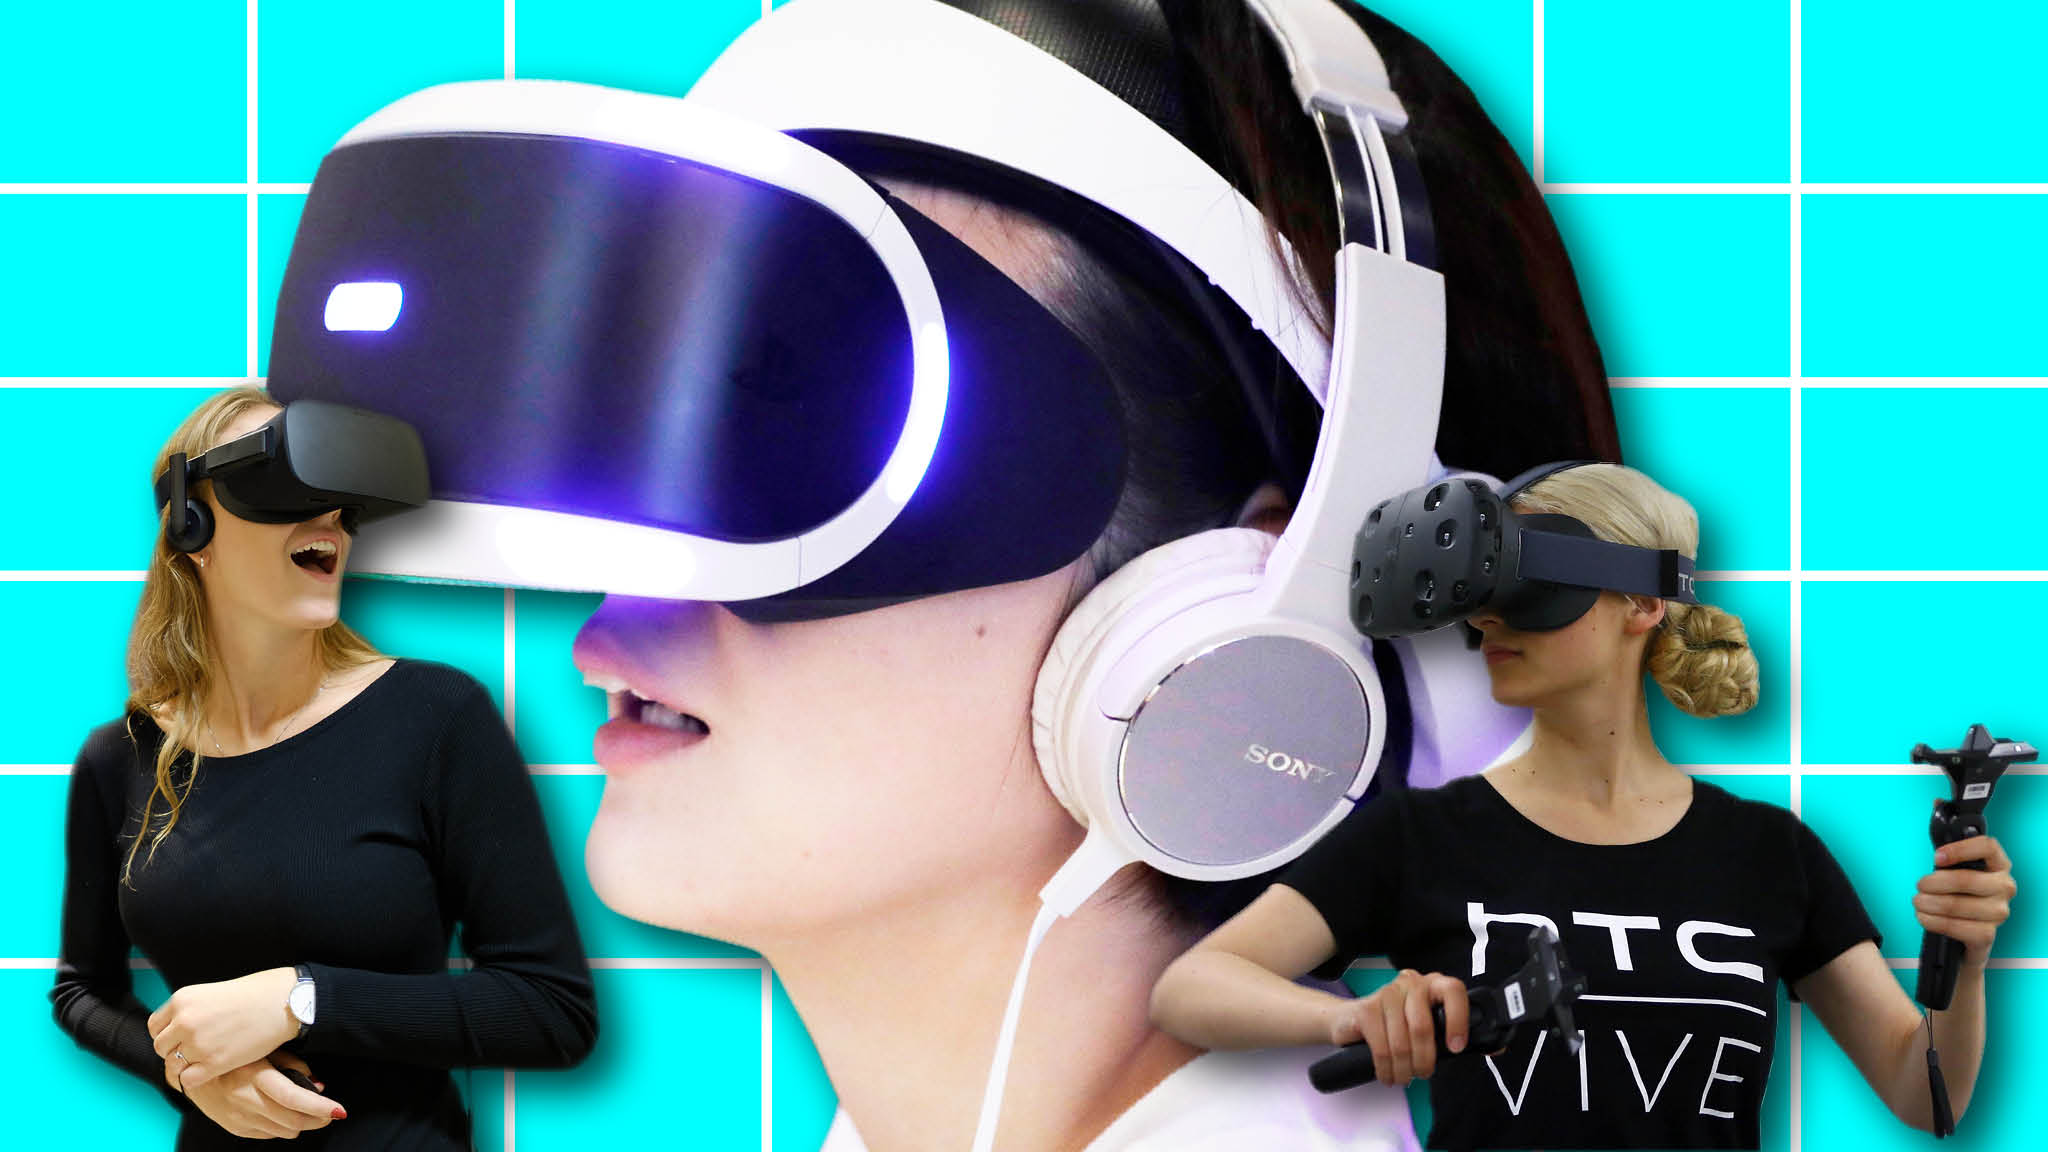 VR industry faces reality check on sales growth | Financial Times